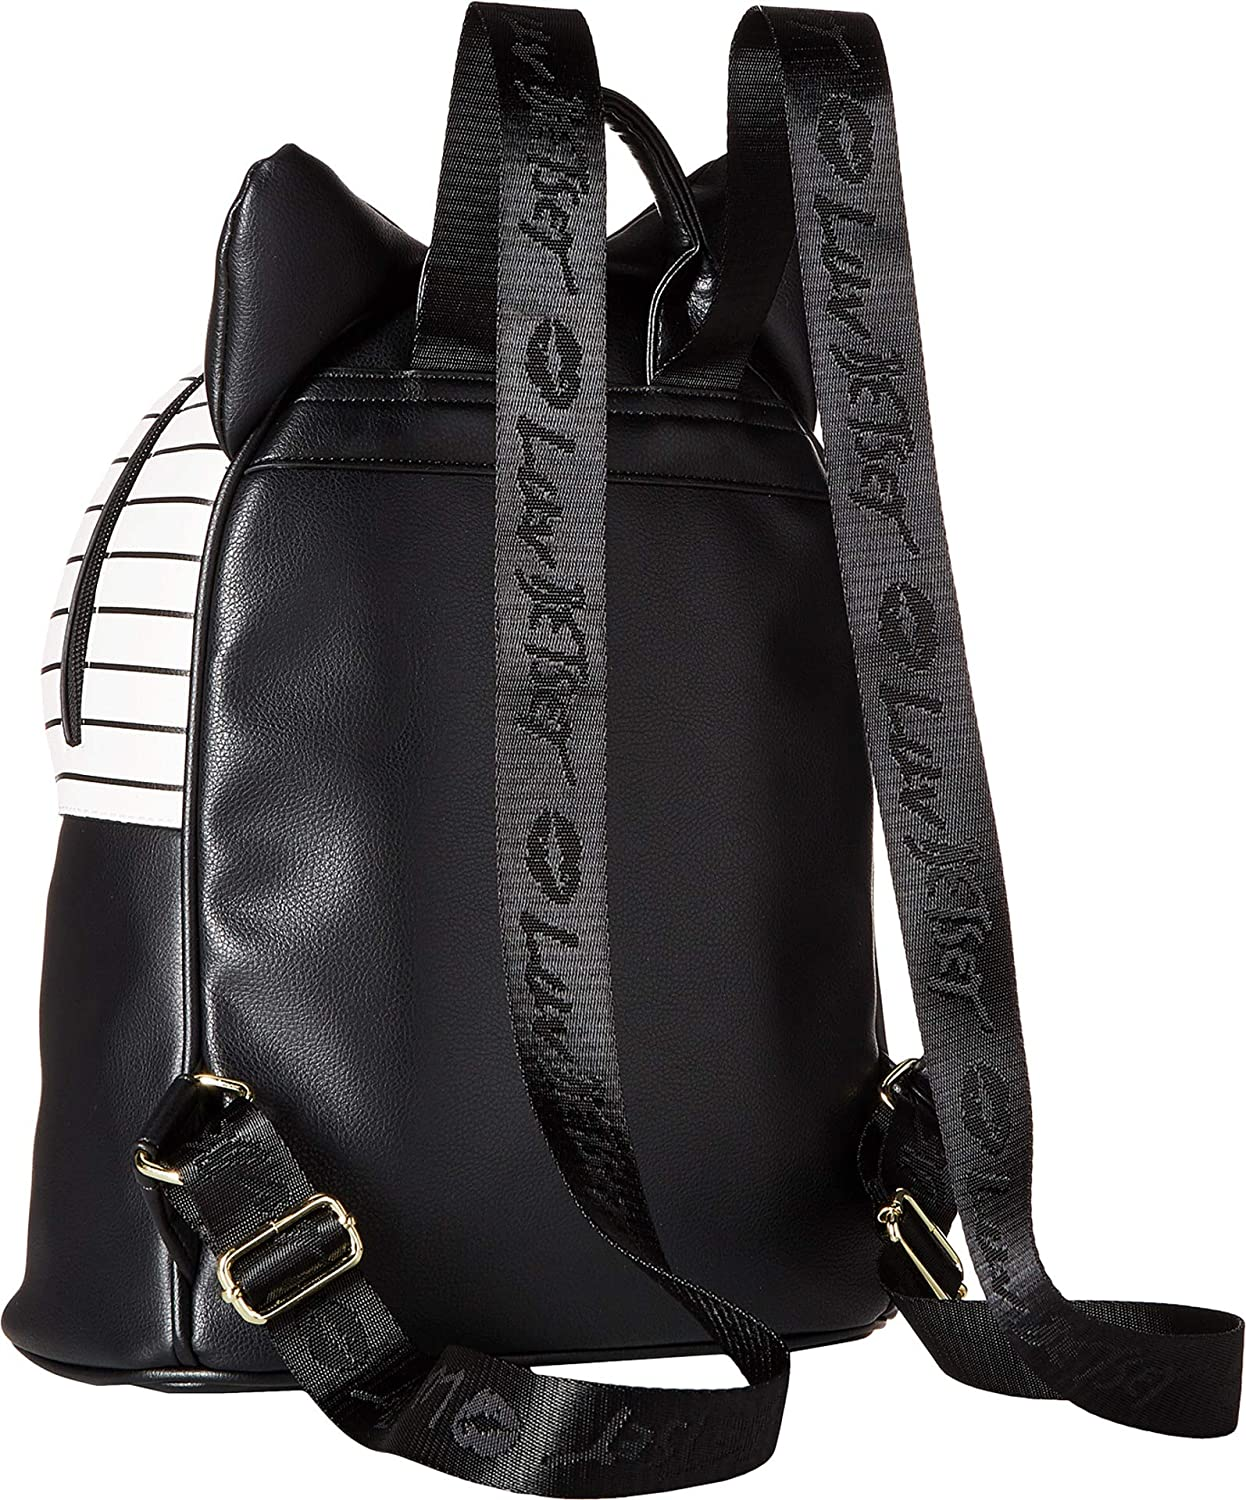 Luv Betsey LBMilla PVC Kitch Backpack w Cat Face 3D Ears Black One Size